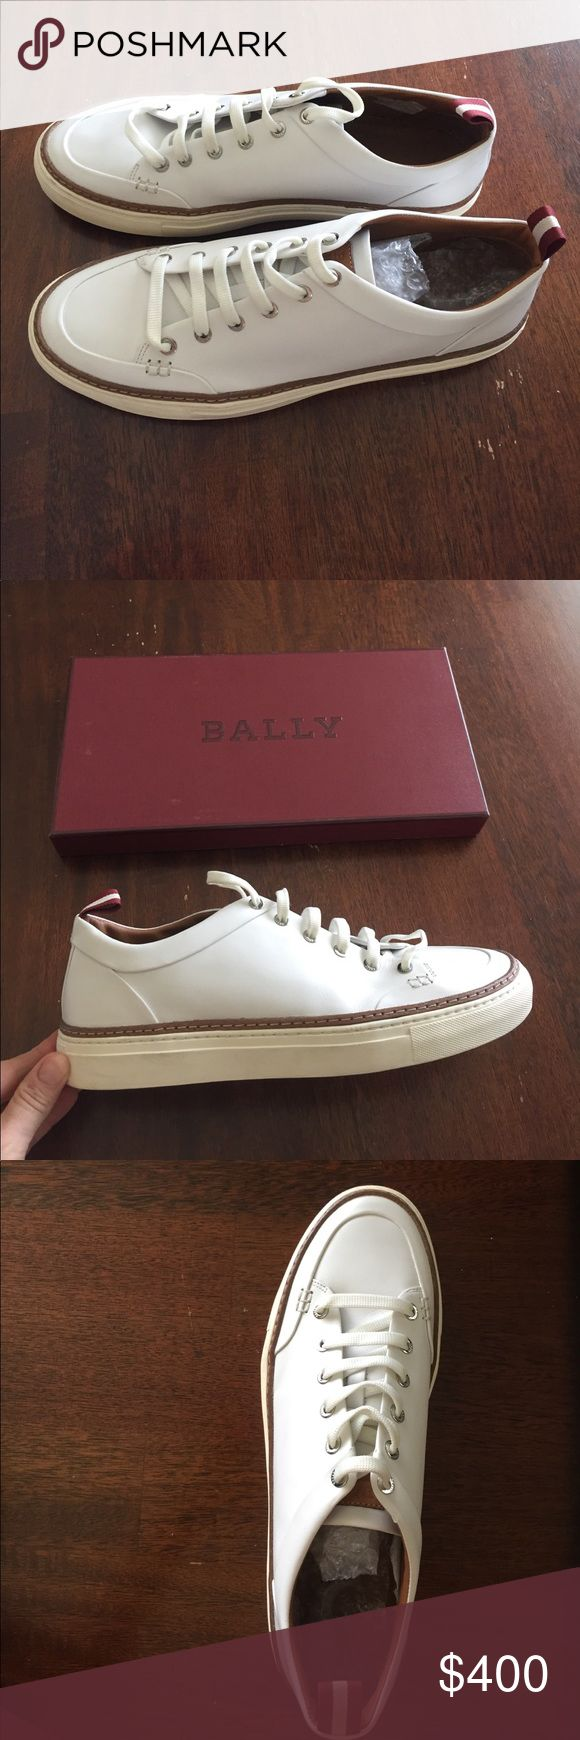 Bally Men's Size 11 Hernando Shoes - Never worn Brand new never work Bally men's shoes. With box Bally Shoes Sneakers